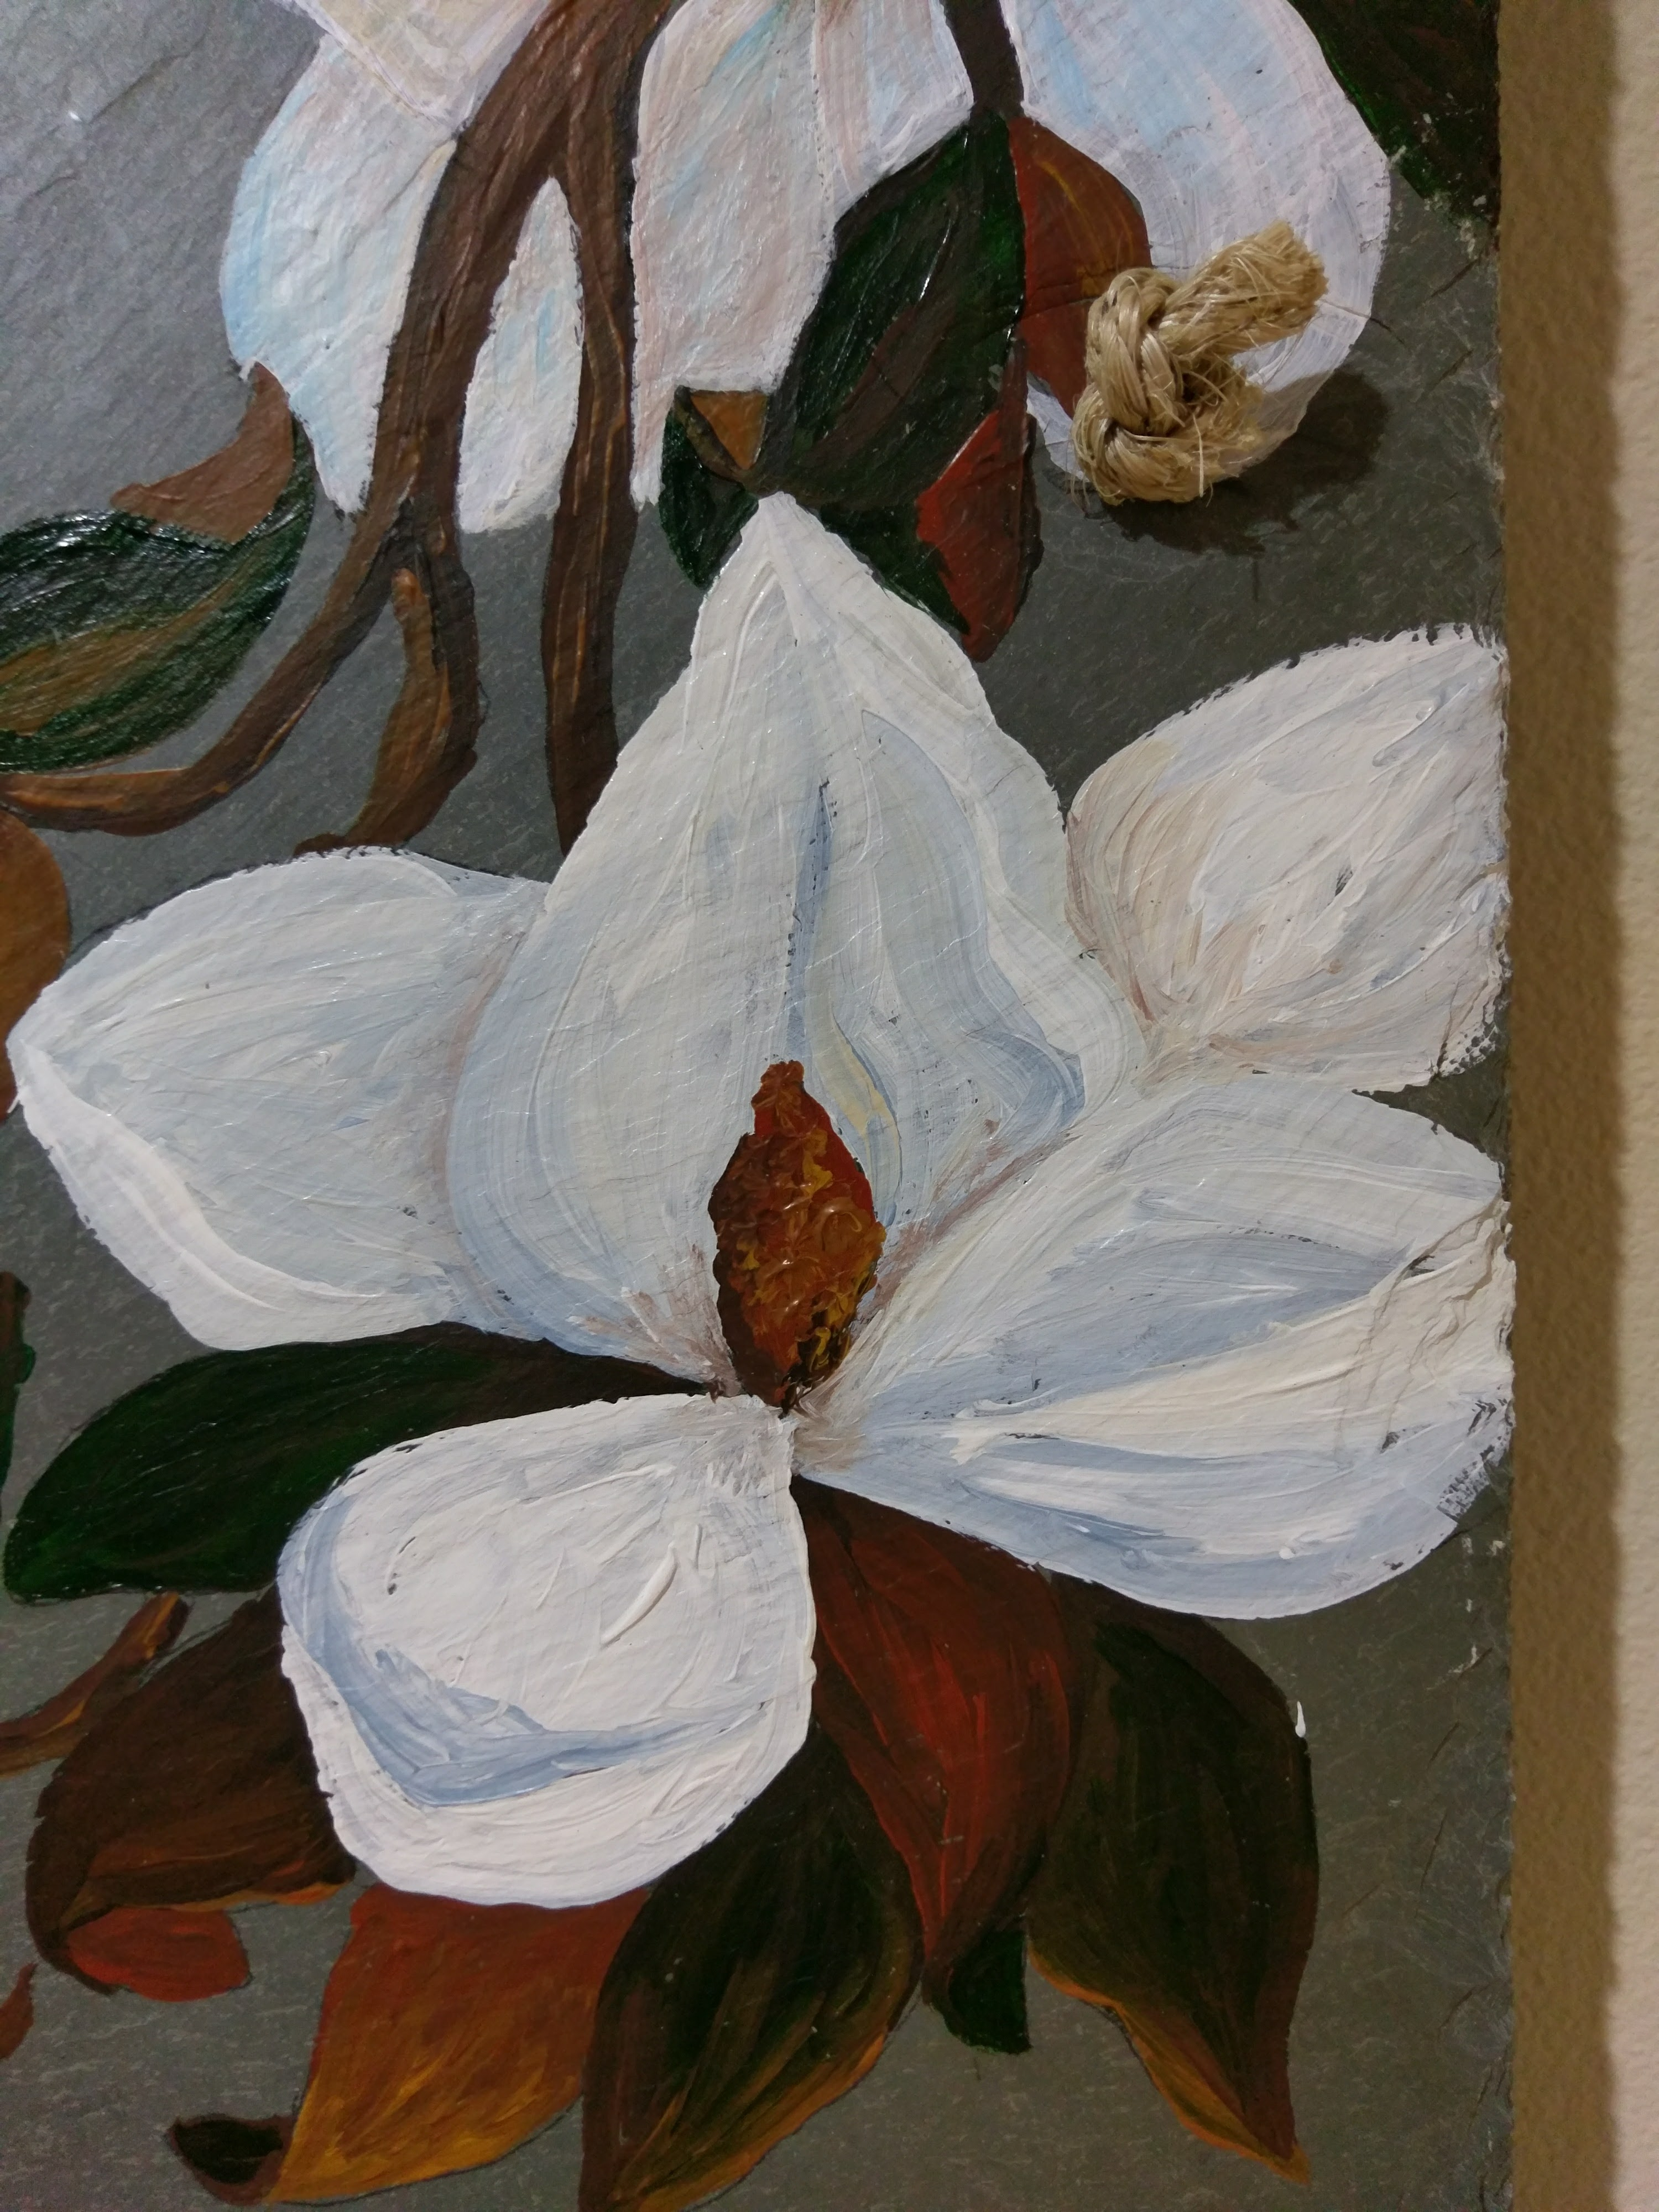 Magnolia Flowers Painted On 100 Plus Year Old Antique